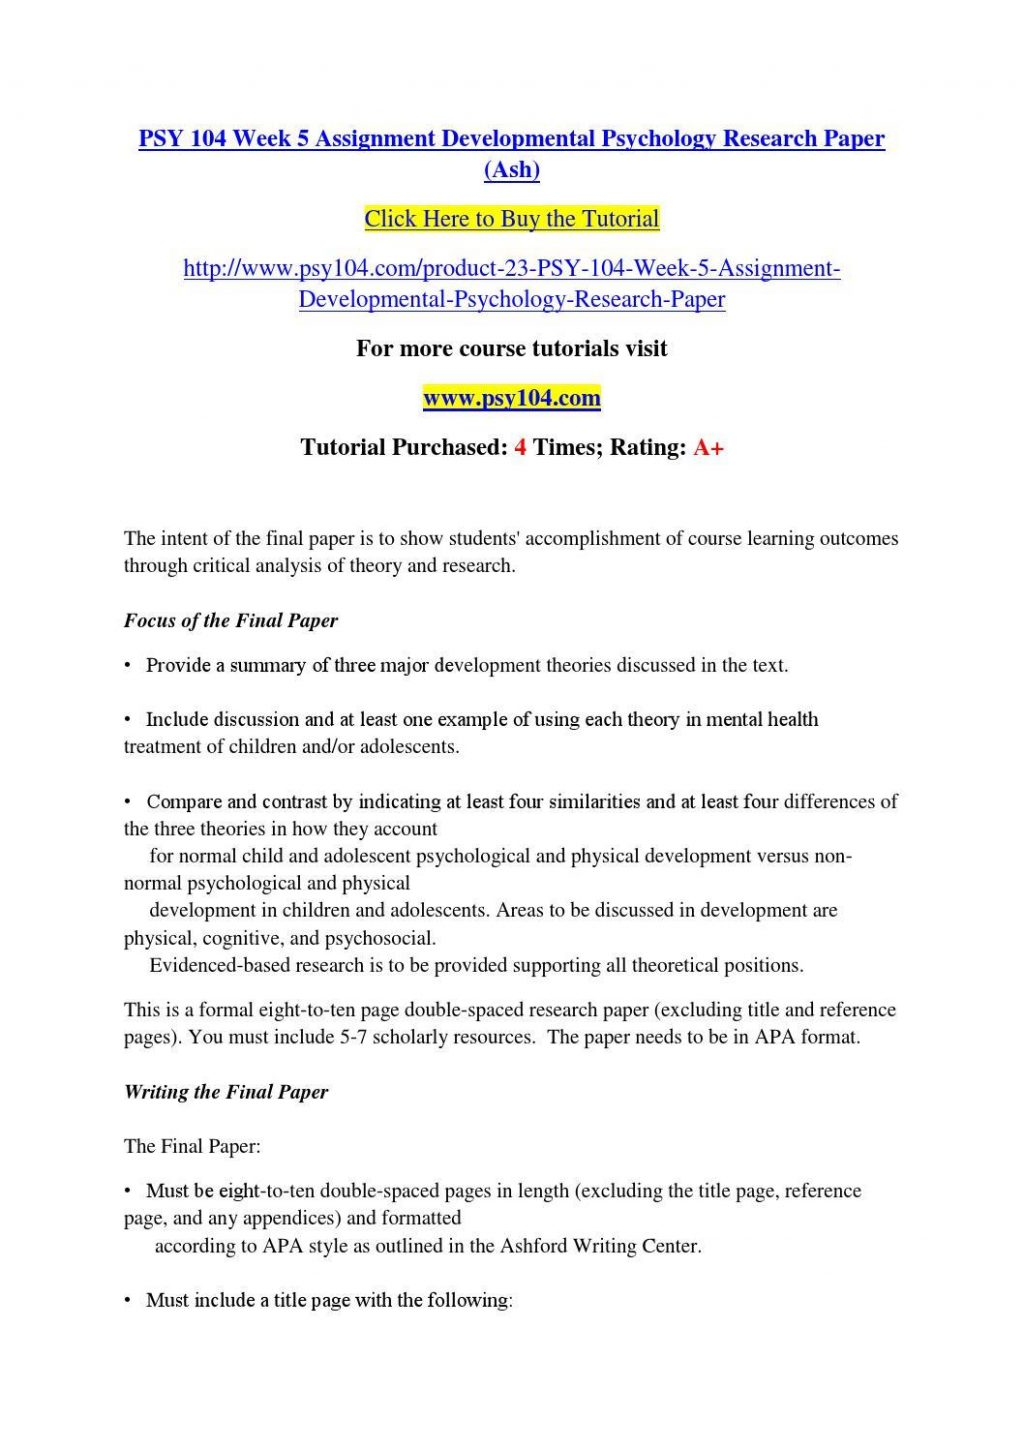 How To Write A Comparing And Contrasting Essay  Essay On My Hero also Common App Short Essay  Developmental Psychology Essay Ideas Structure  How To Write An Essay Fast And Easy